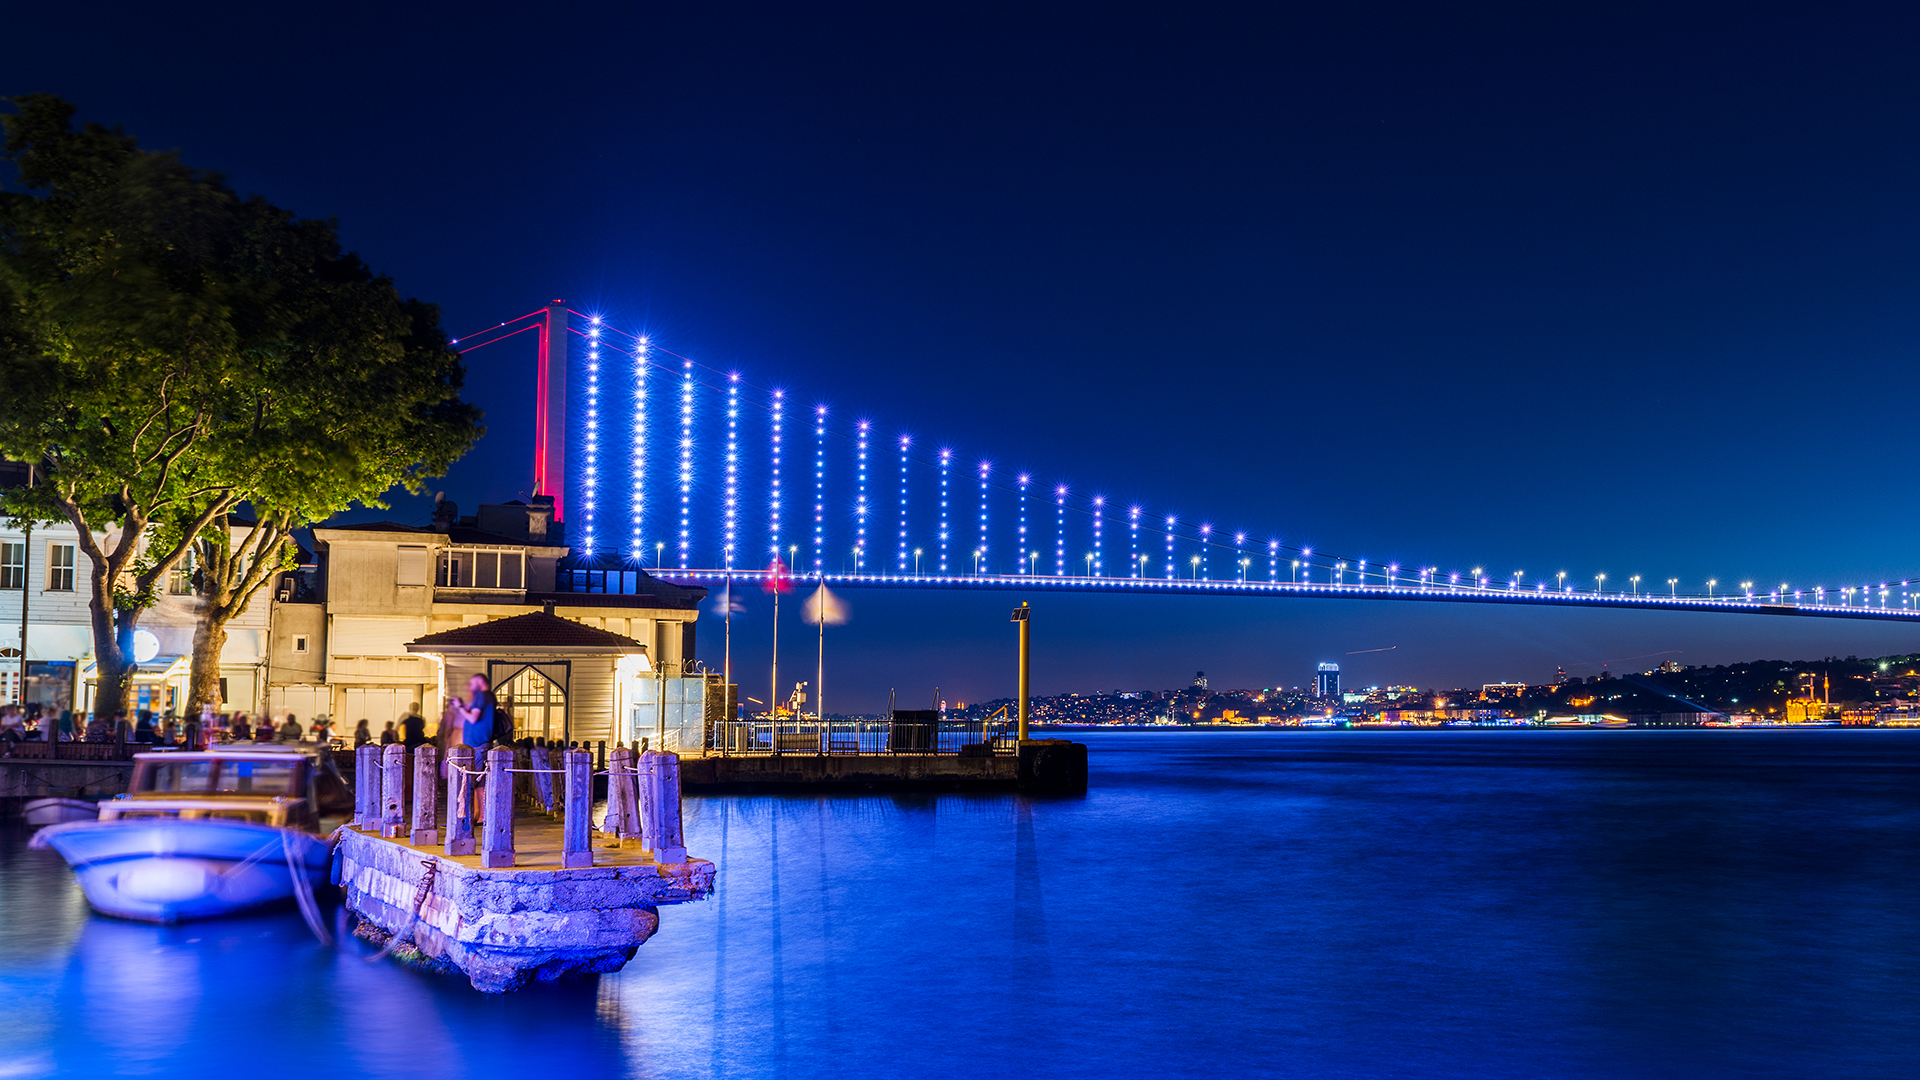 Retail investment funds in Turkey: Regulatory overview